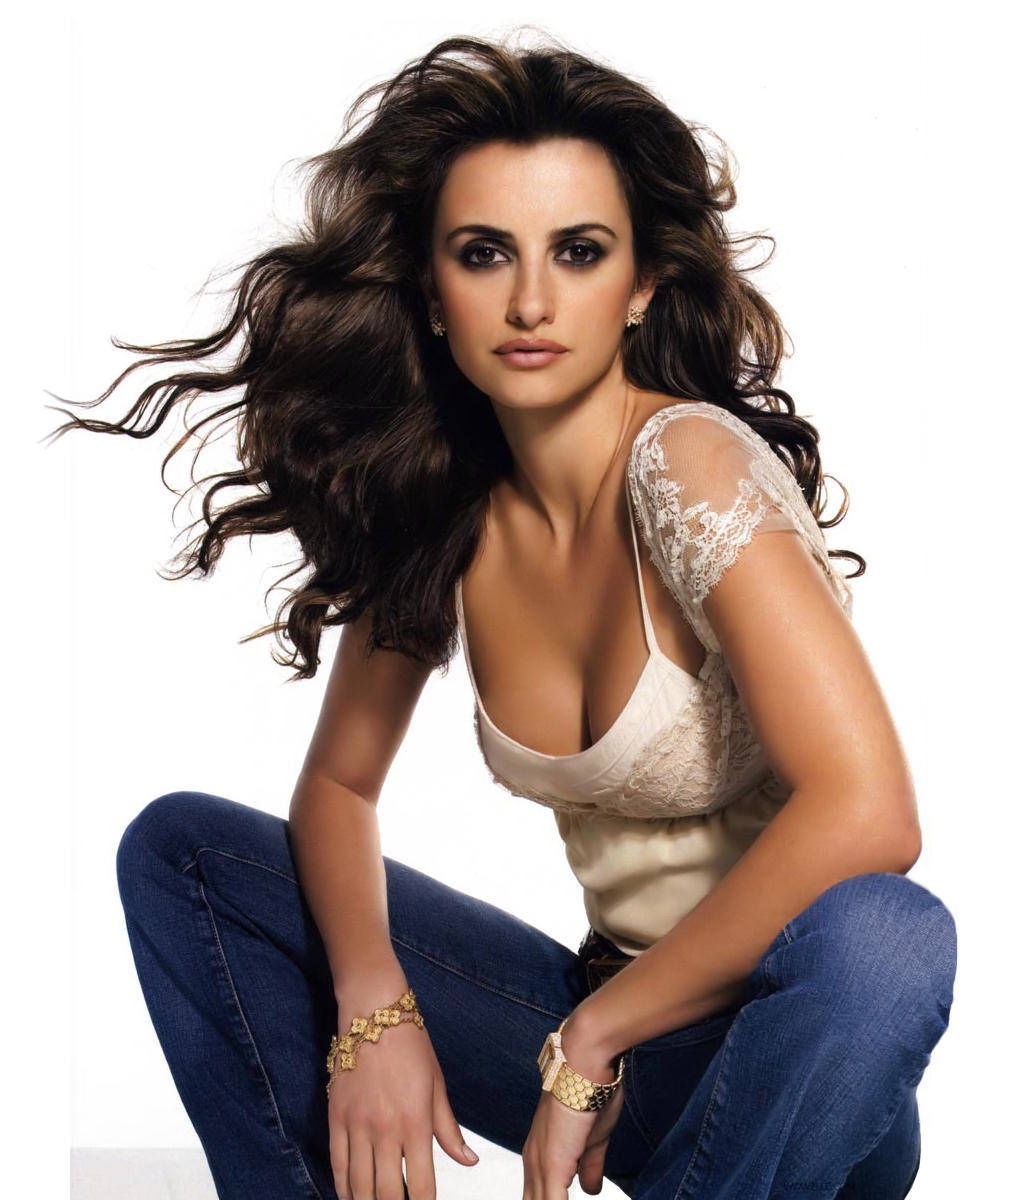 Penelope Cruz Biography Hd Wallpaper furthermore Top 5 Celebrity Birthdays In April 19352 2 likewise Lost Medals Australia Medals Gone Missing Join Forces To Return The Missing 1914 1915 Star Of Gallipoli Veteran Oscar Roy Luhrs 24th Battalion Aif in addition Showthread in addition Fashion Of My Fair Lady. on oscar awarded list